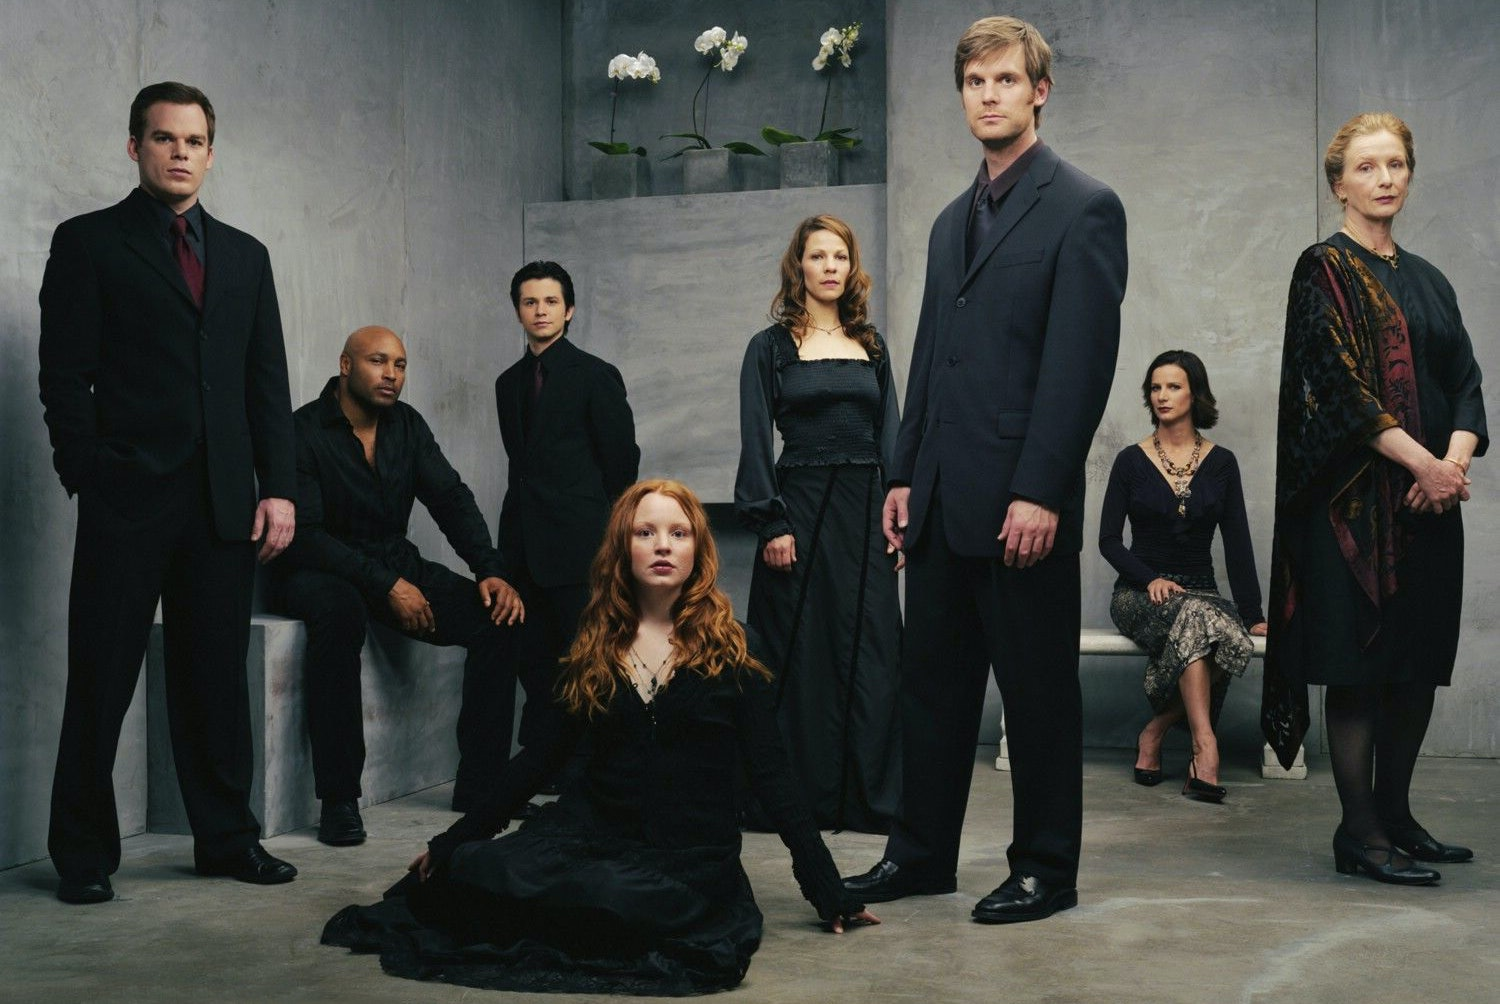 Six Feet Under Gave These 10 Famous Stars A Guest Starring Role Before They Were Huge